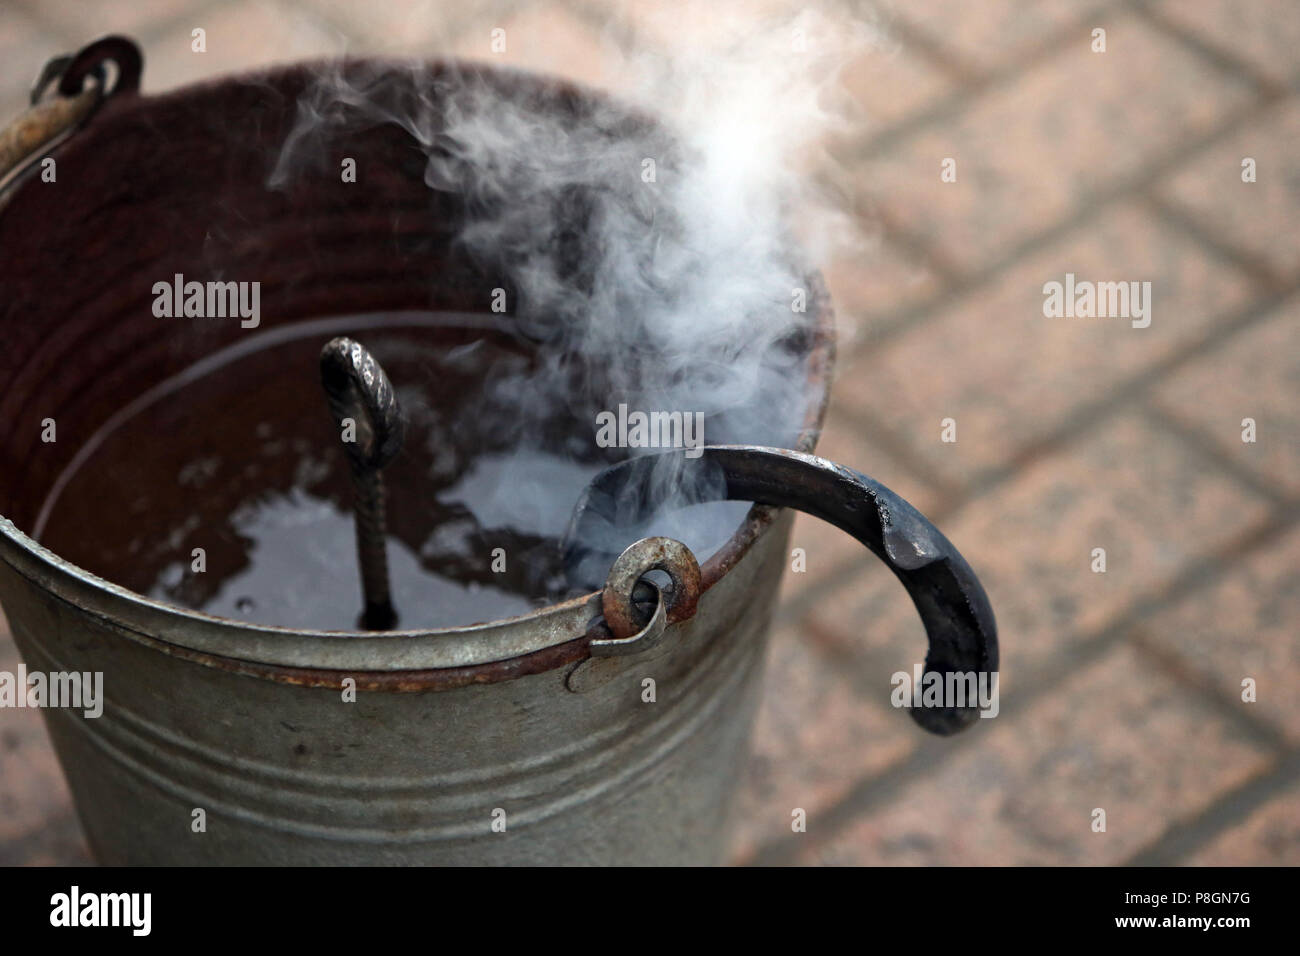 Neustadt (Dosse), heated horseshoe is cooled in a bucket of water - Stock Image